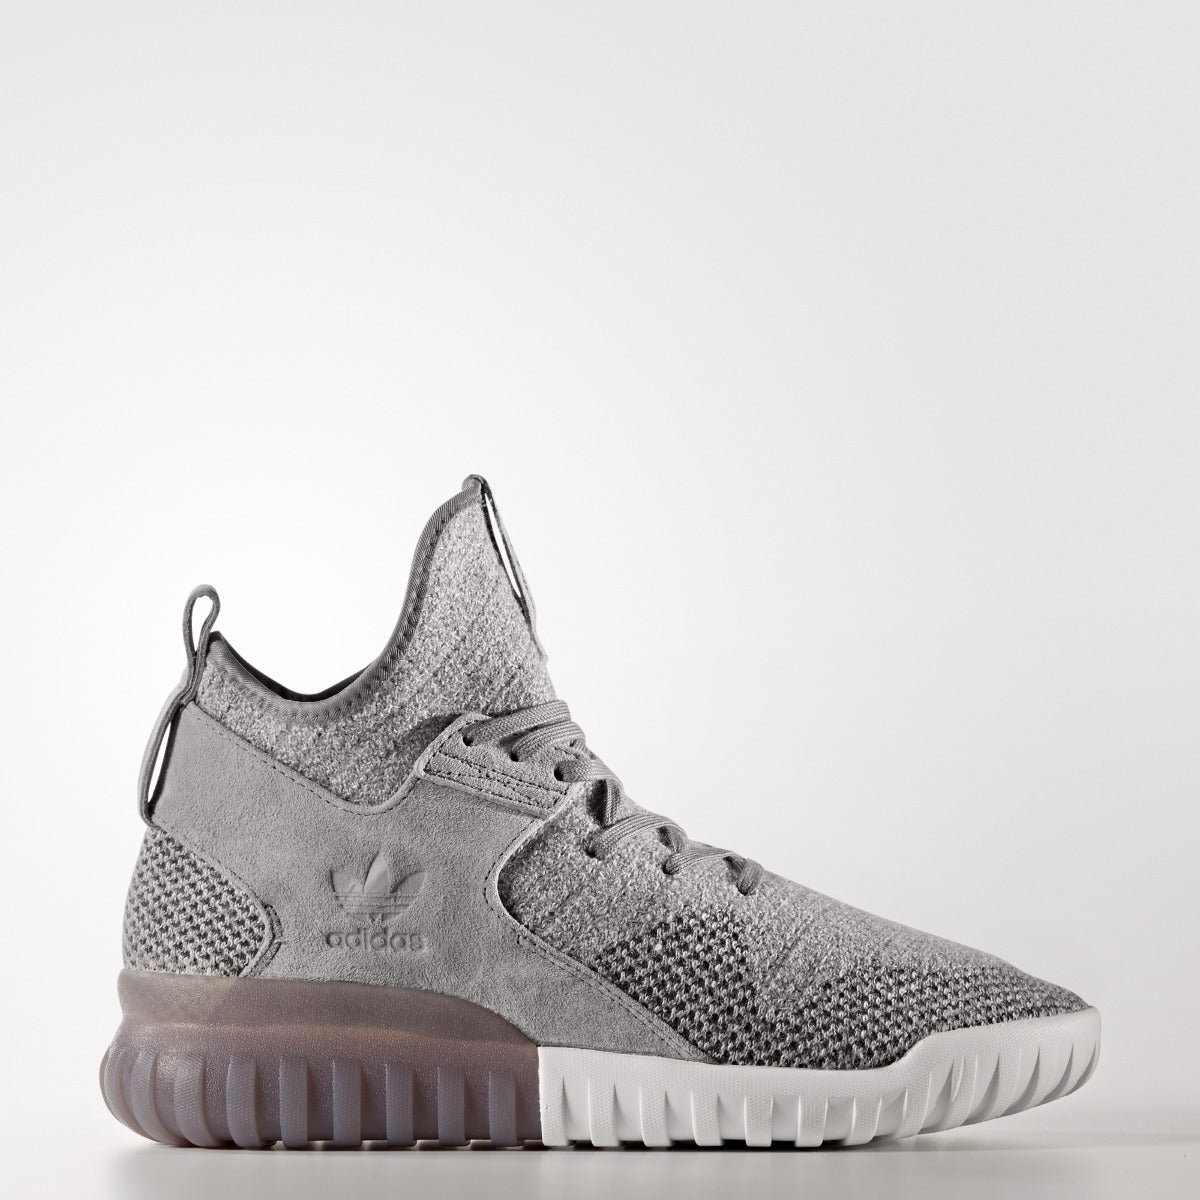 sports shoes d390e 0c7bc Men s adidas Originals Tubular X Primeknit Shoes Grey